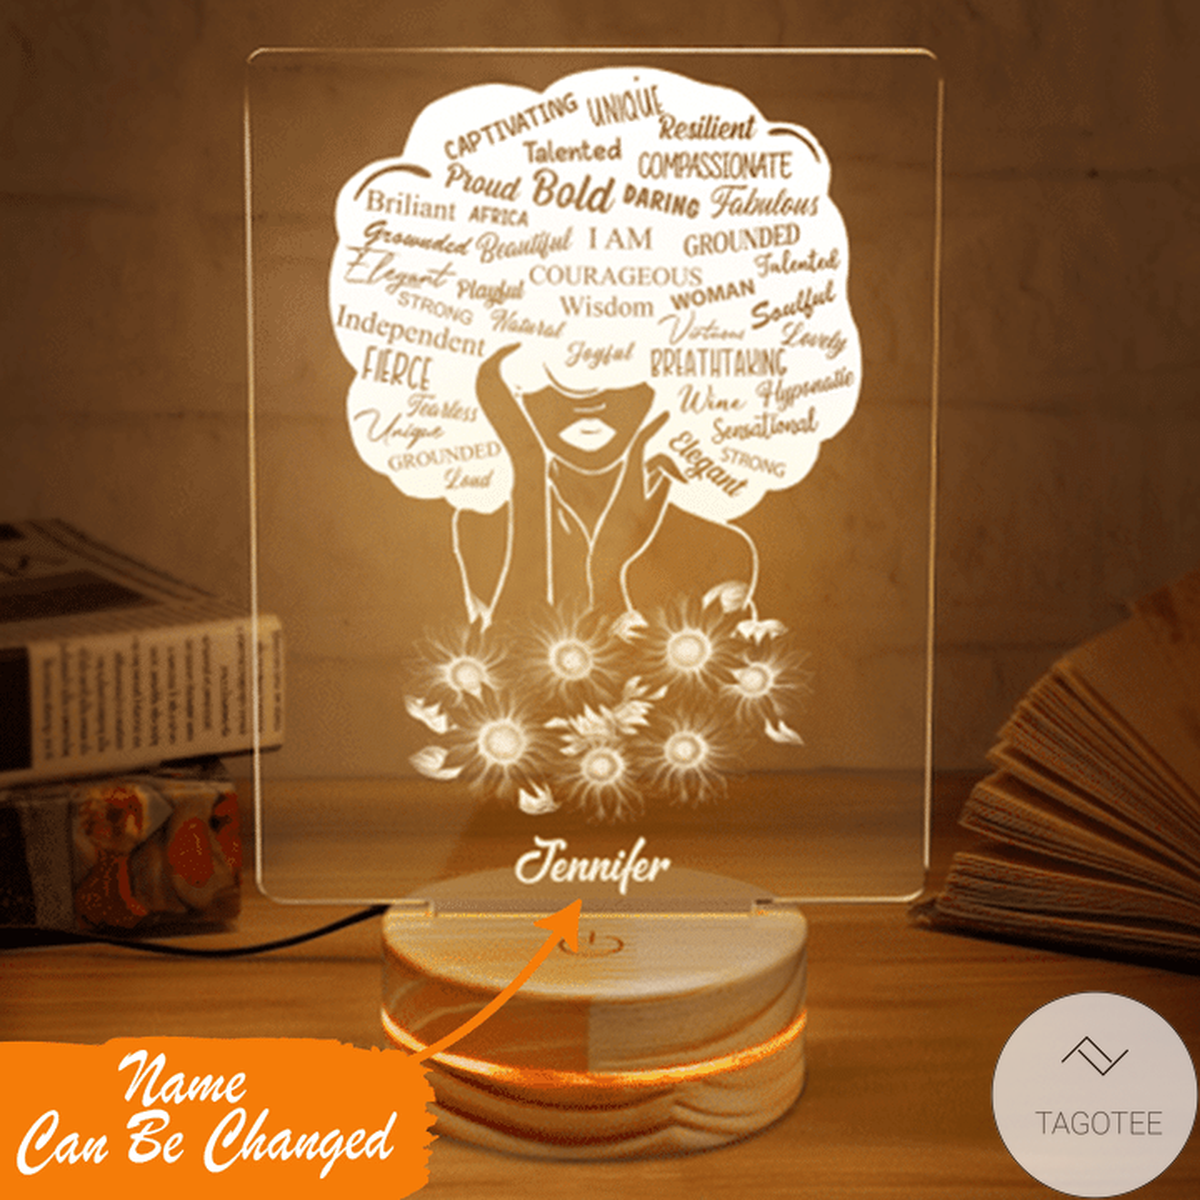 Personalized Black Girl I Am Unique Bold Proud Resilient UV LED Lamp, Night Light Lamps